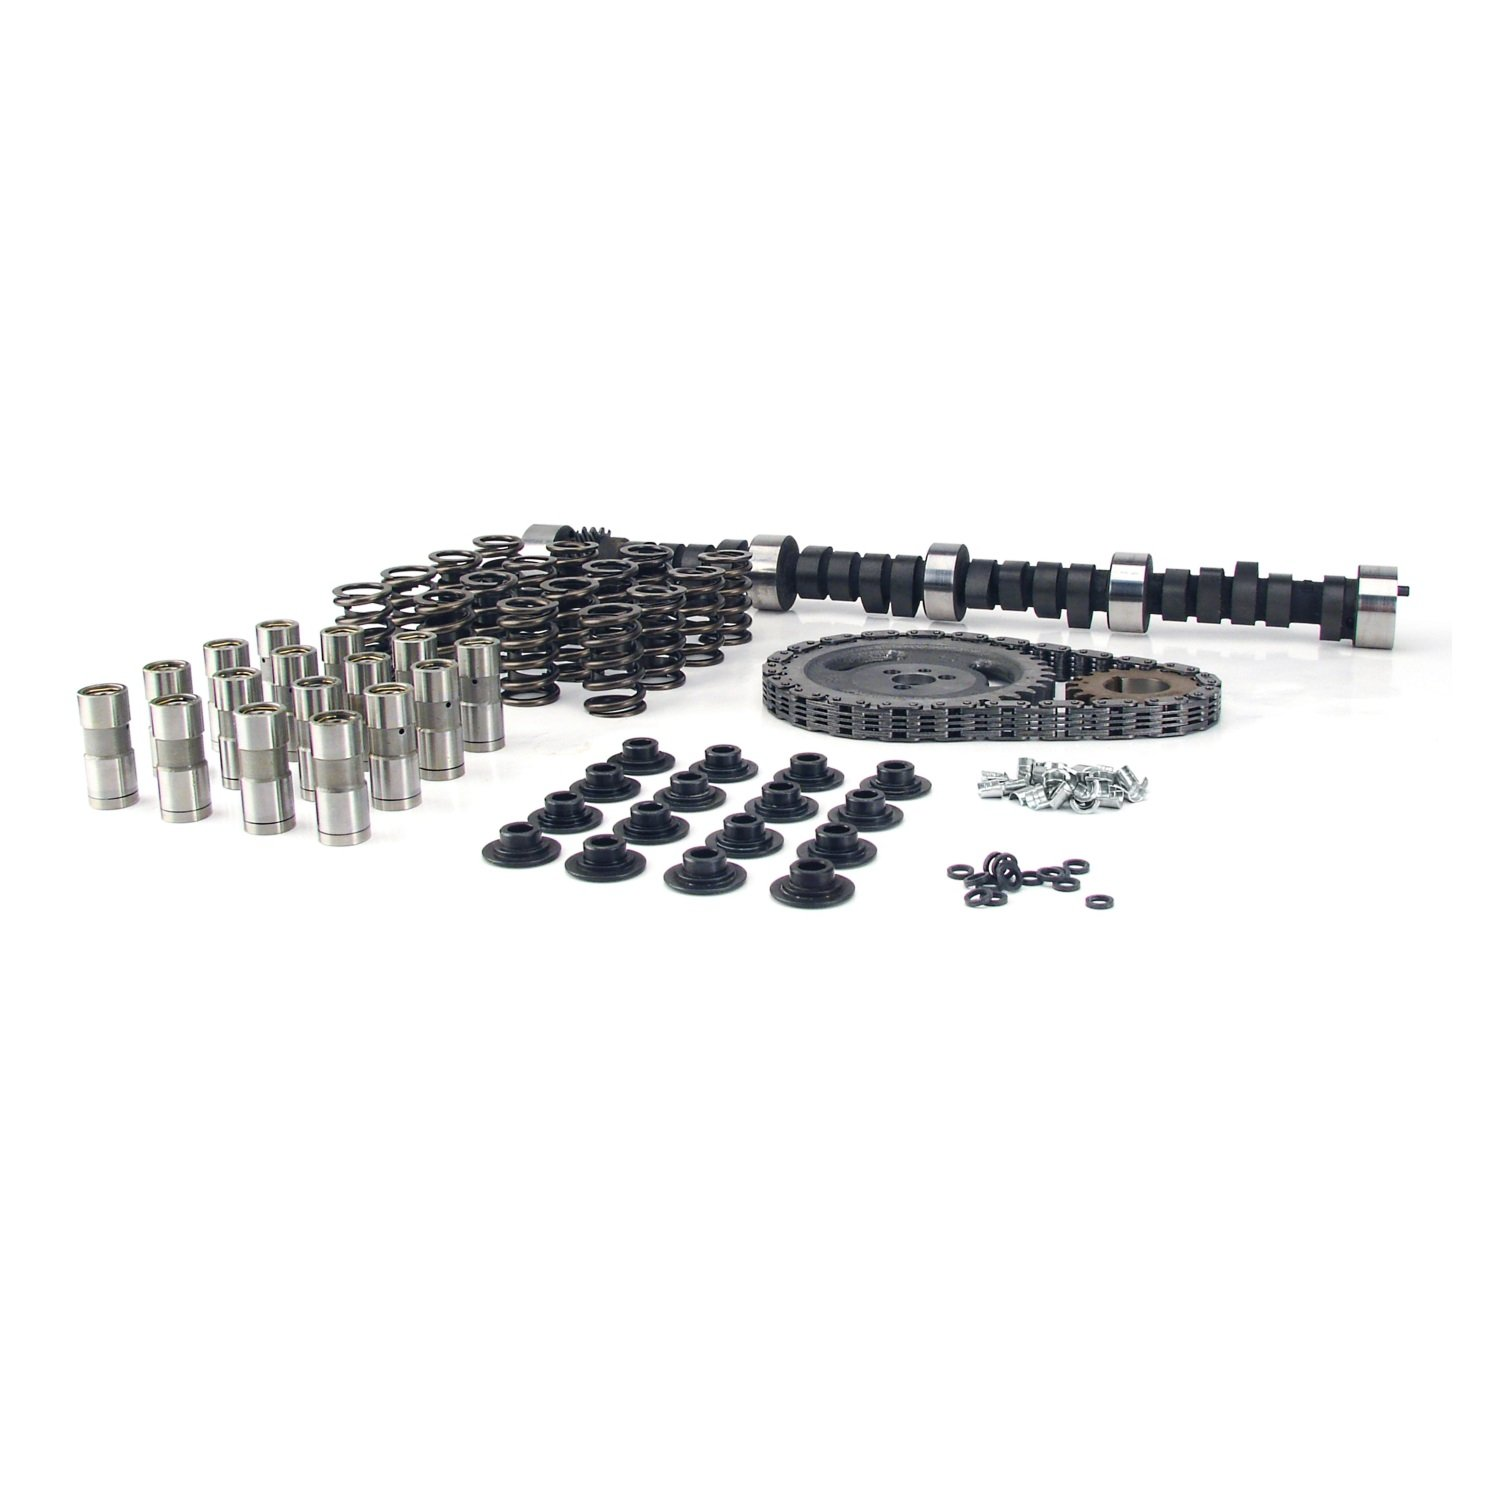 COMP Cams K12-600-4 Thumpr 227//241 Hydraulic Flat Cam K-Kit for Chevrolet Small Block